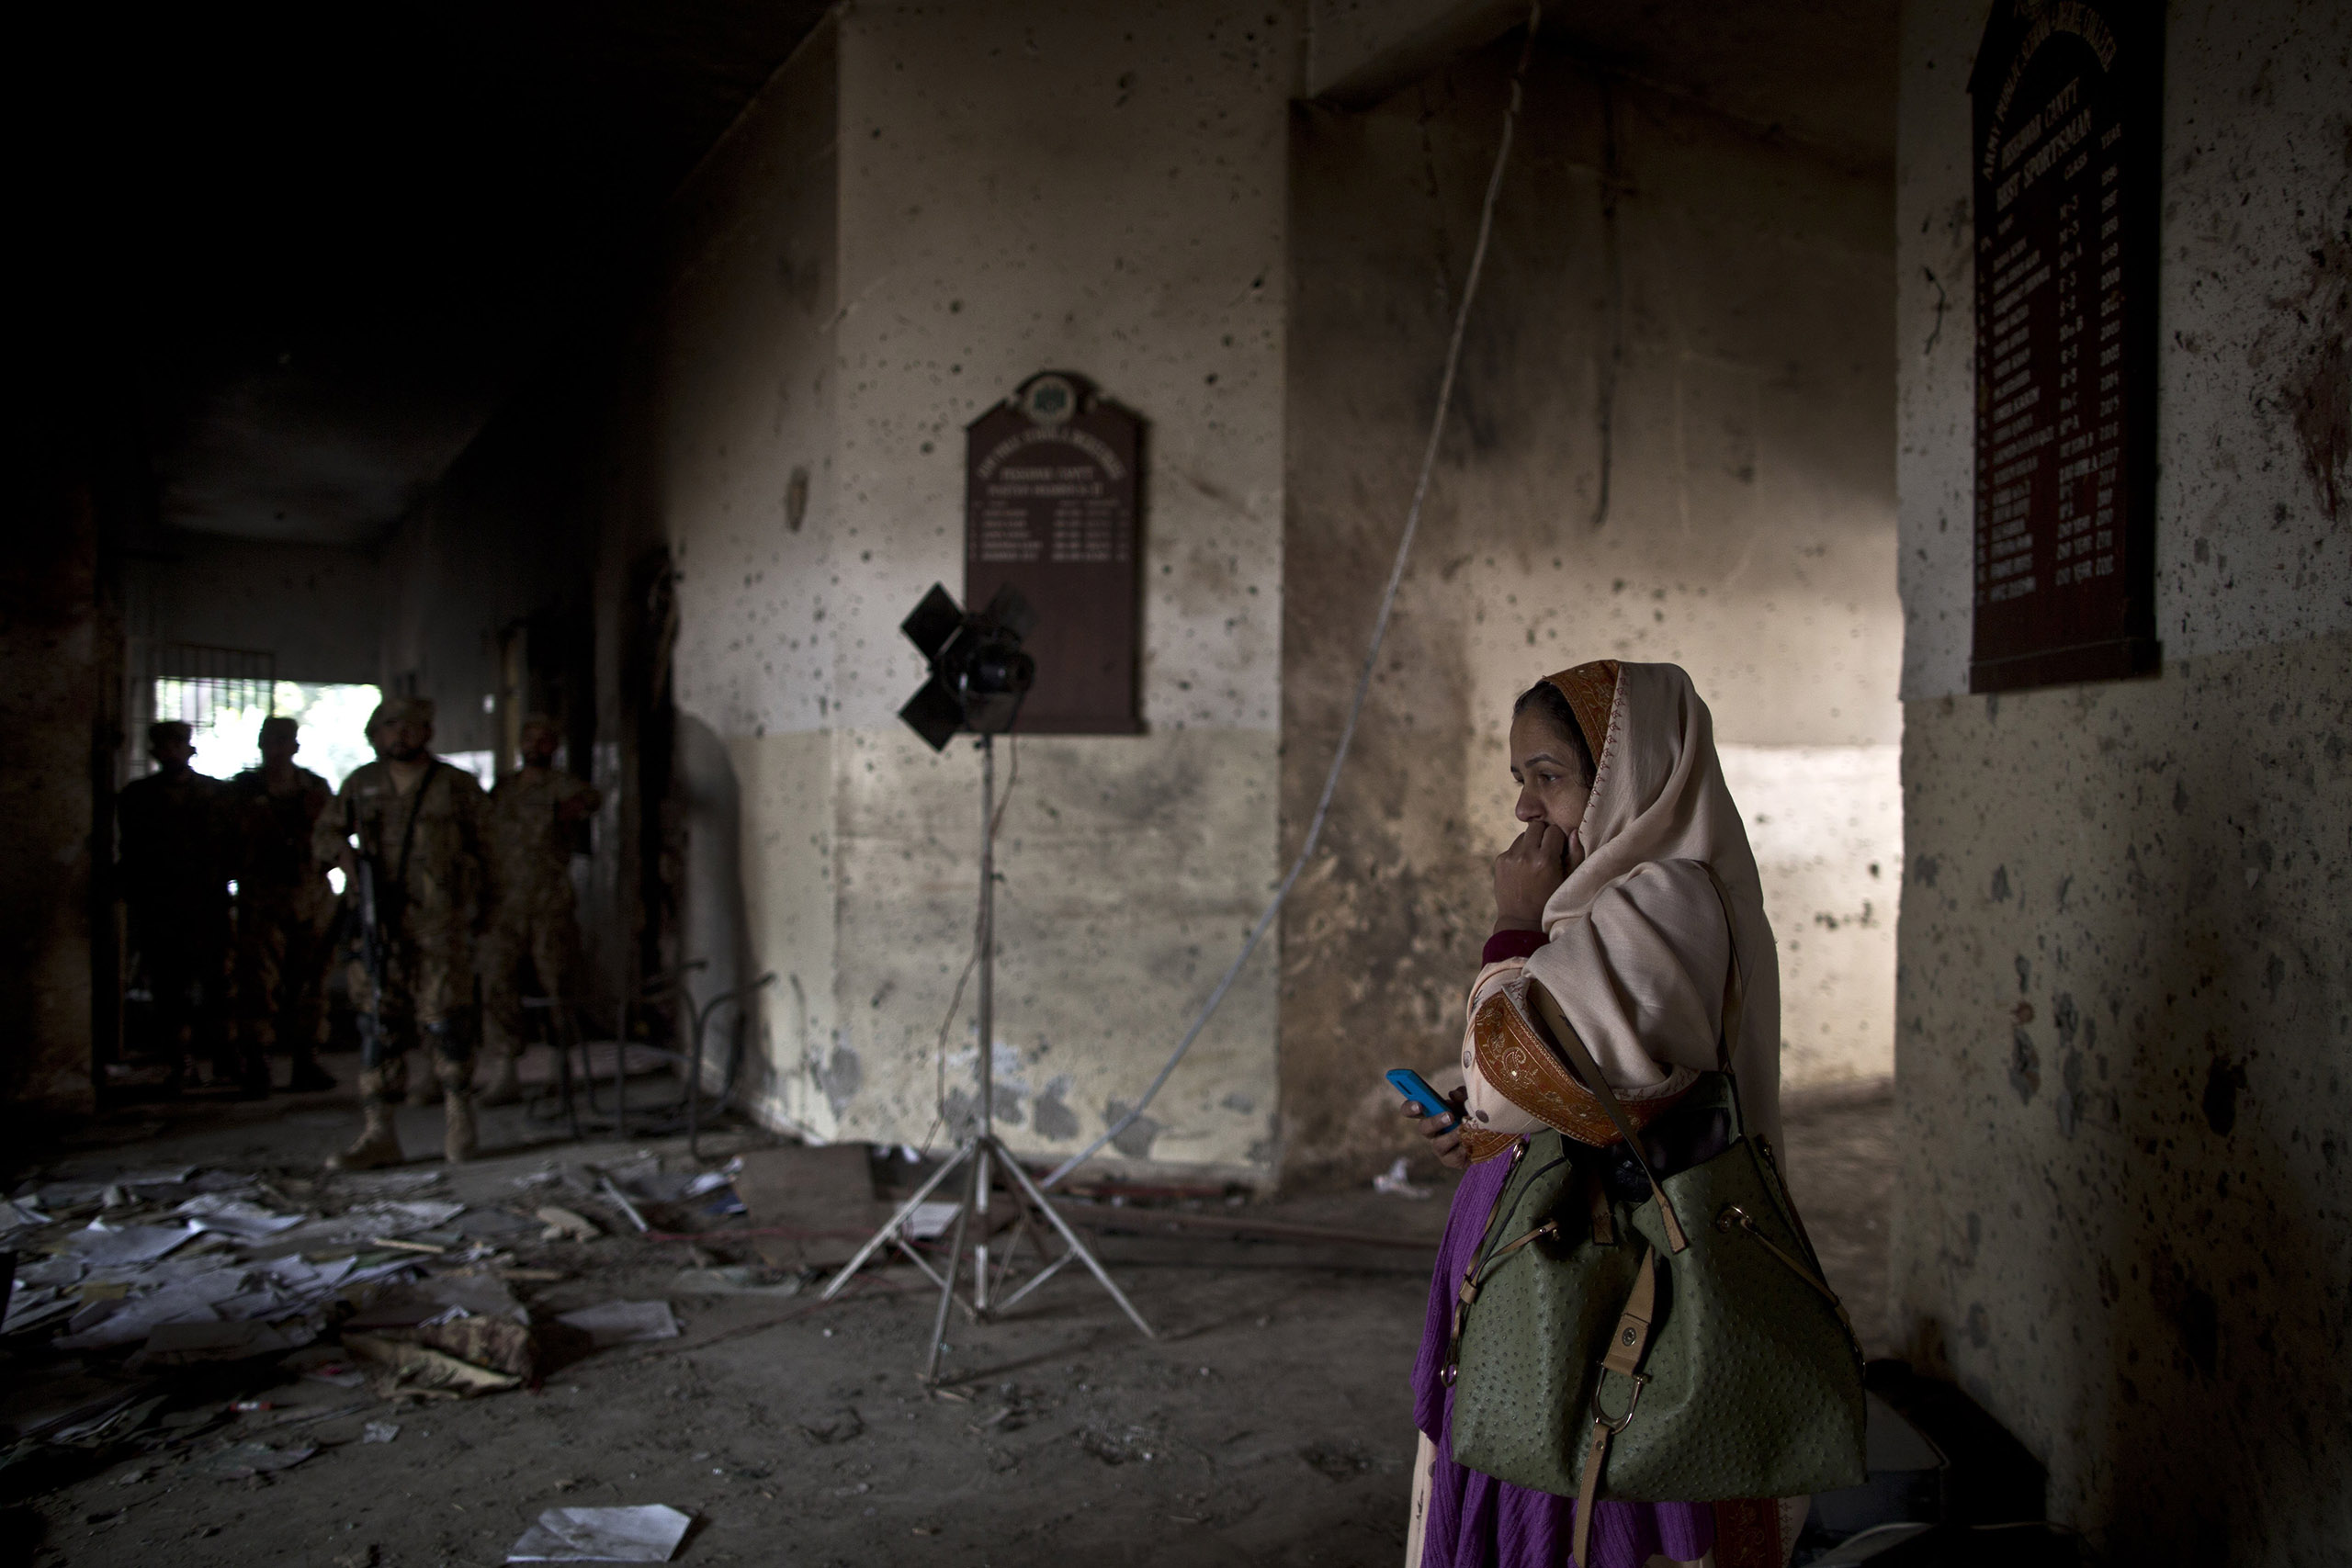 A Pakistani woman looks at the damage inside the Army Public School, which was attacked on Dec. 16 by the Pakistani Taliban. Peshawar, Pakistan. Dec. 18, 2014.